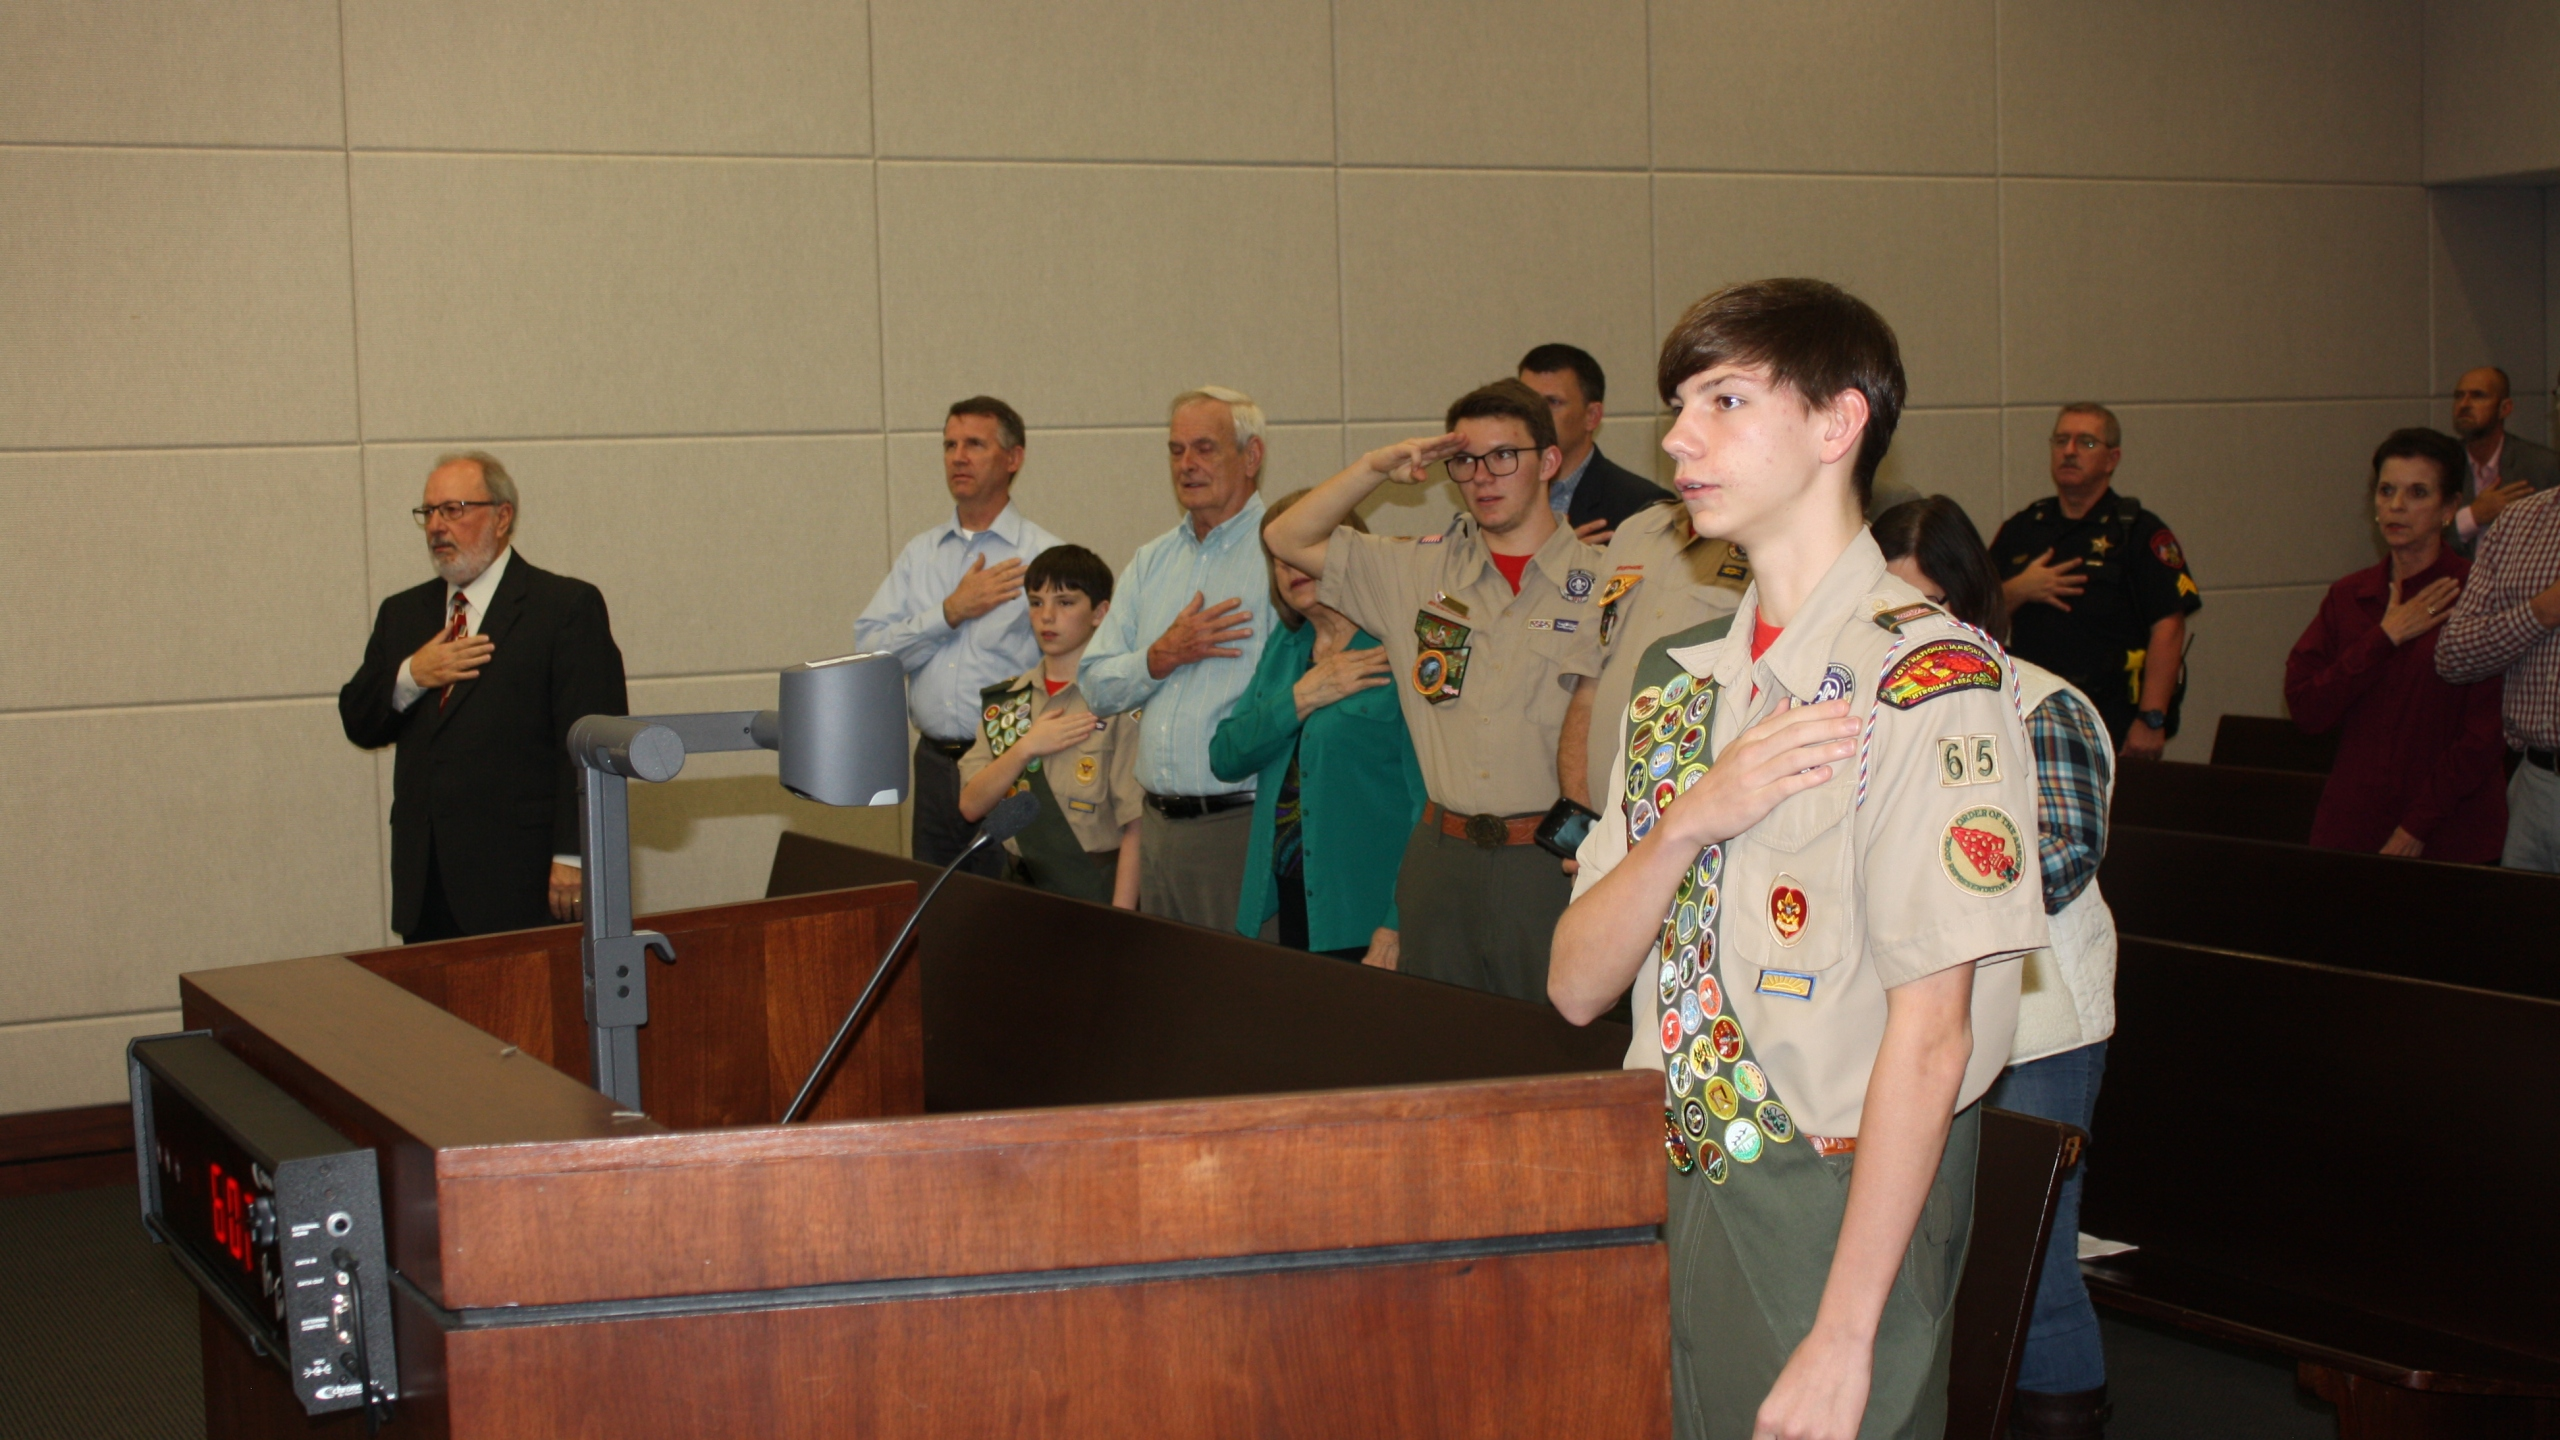 Photo #2 - Eagle Scout Andrew Poche leads the Pledge of Allegiance_1551125916671.JPG.jpg